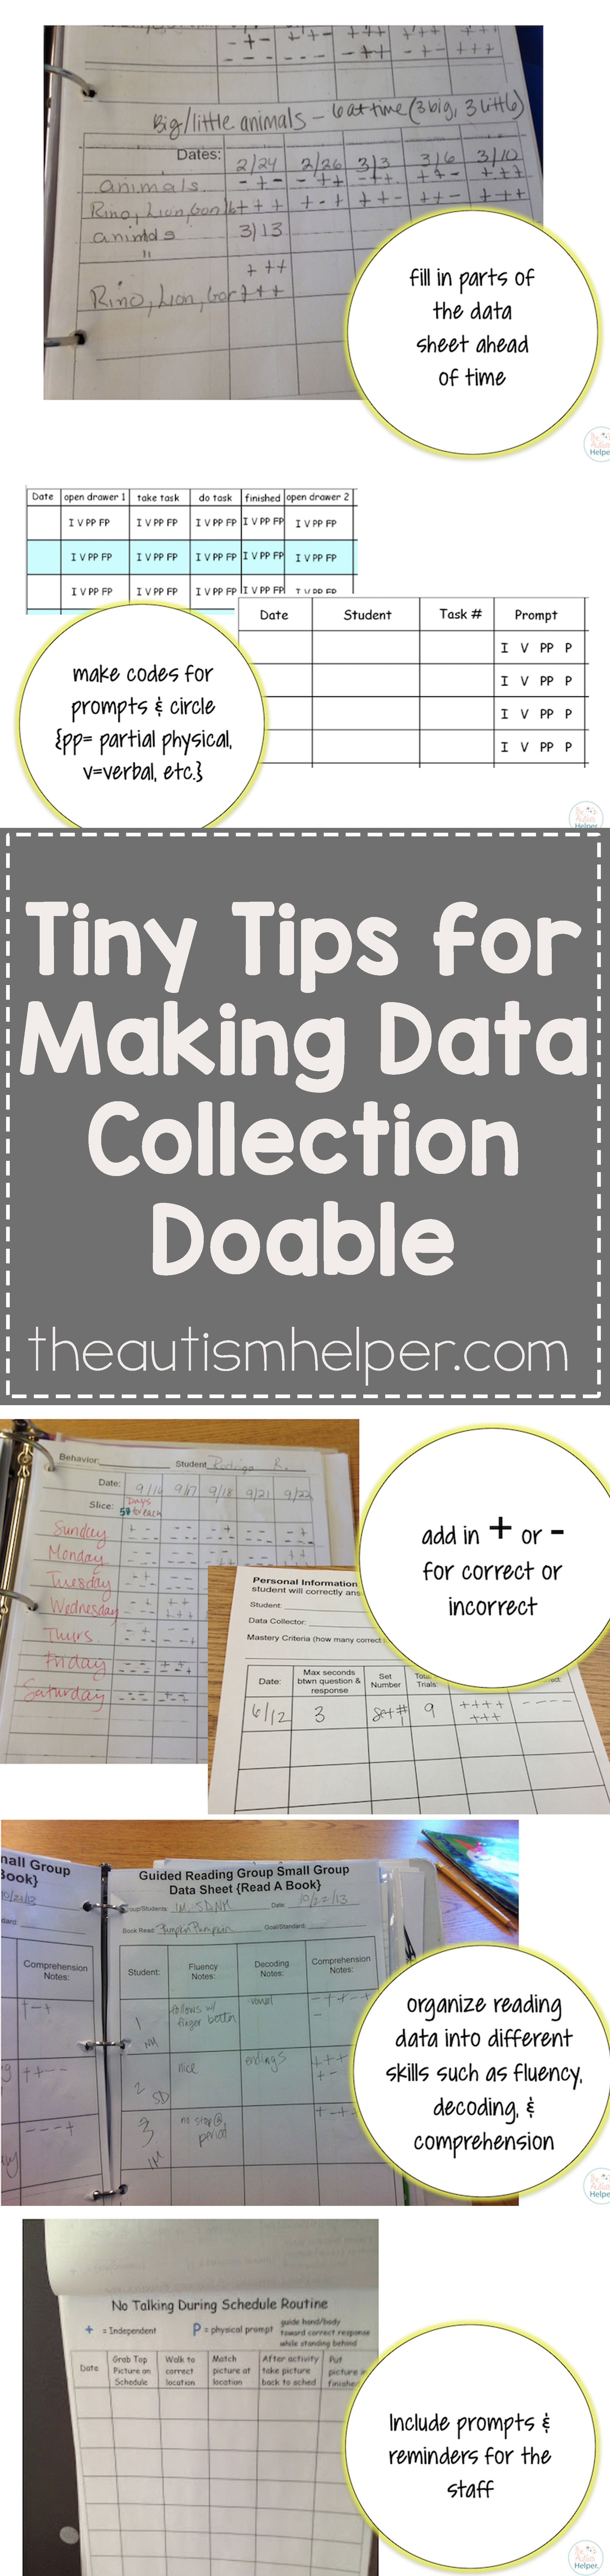 Tiny Tips For Making Data Collection Doable